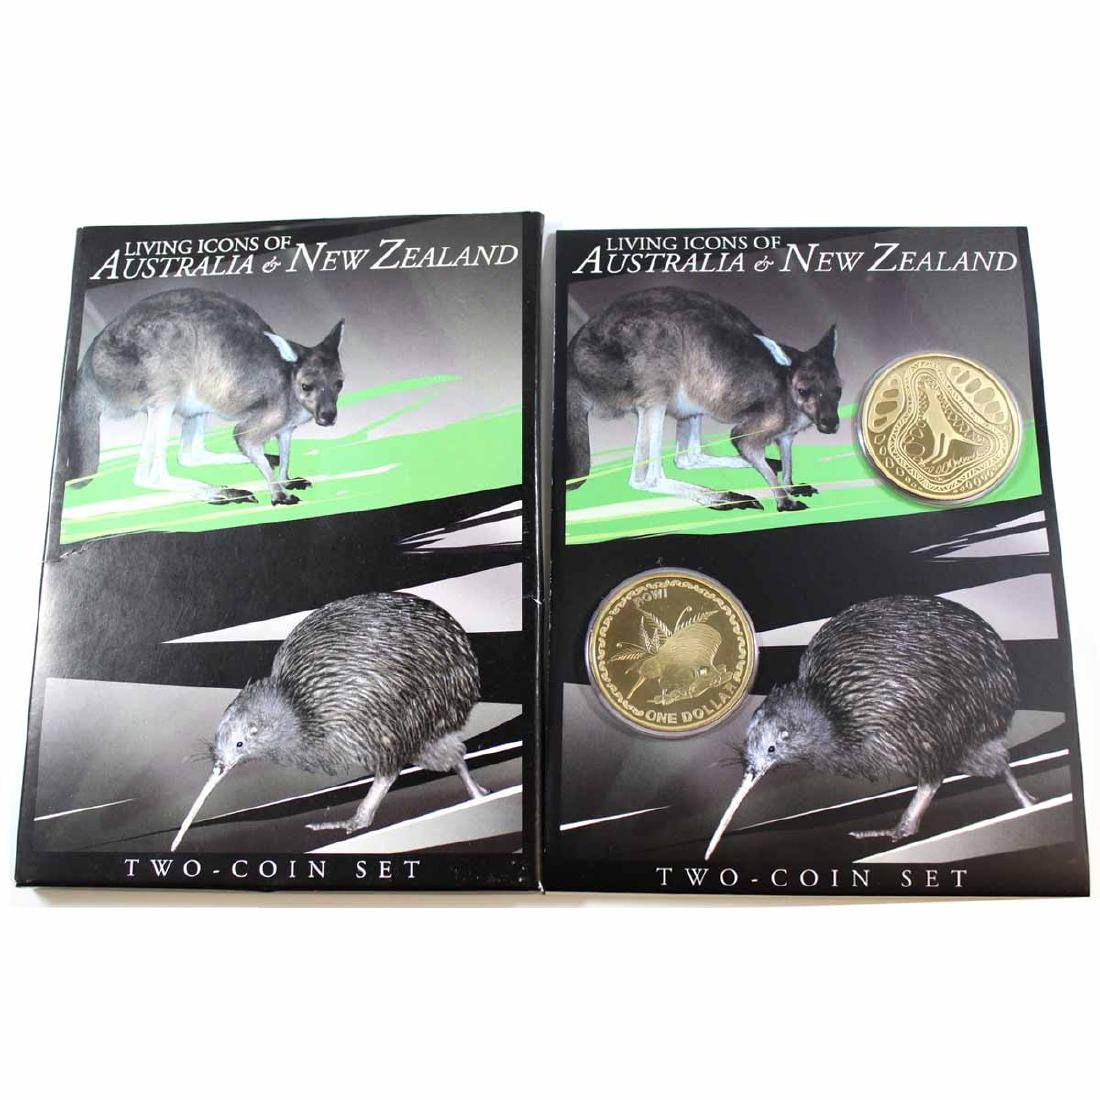 2005 Living Icons of Australia & New Zealand $1 2-Coin